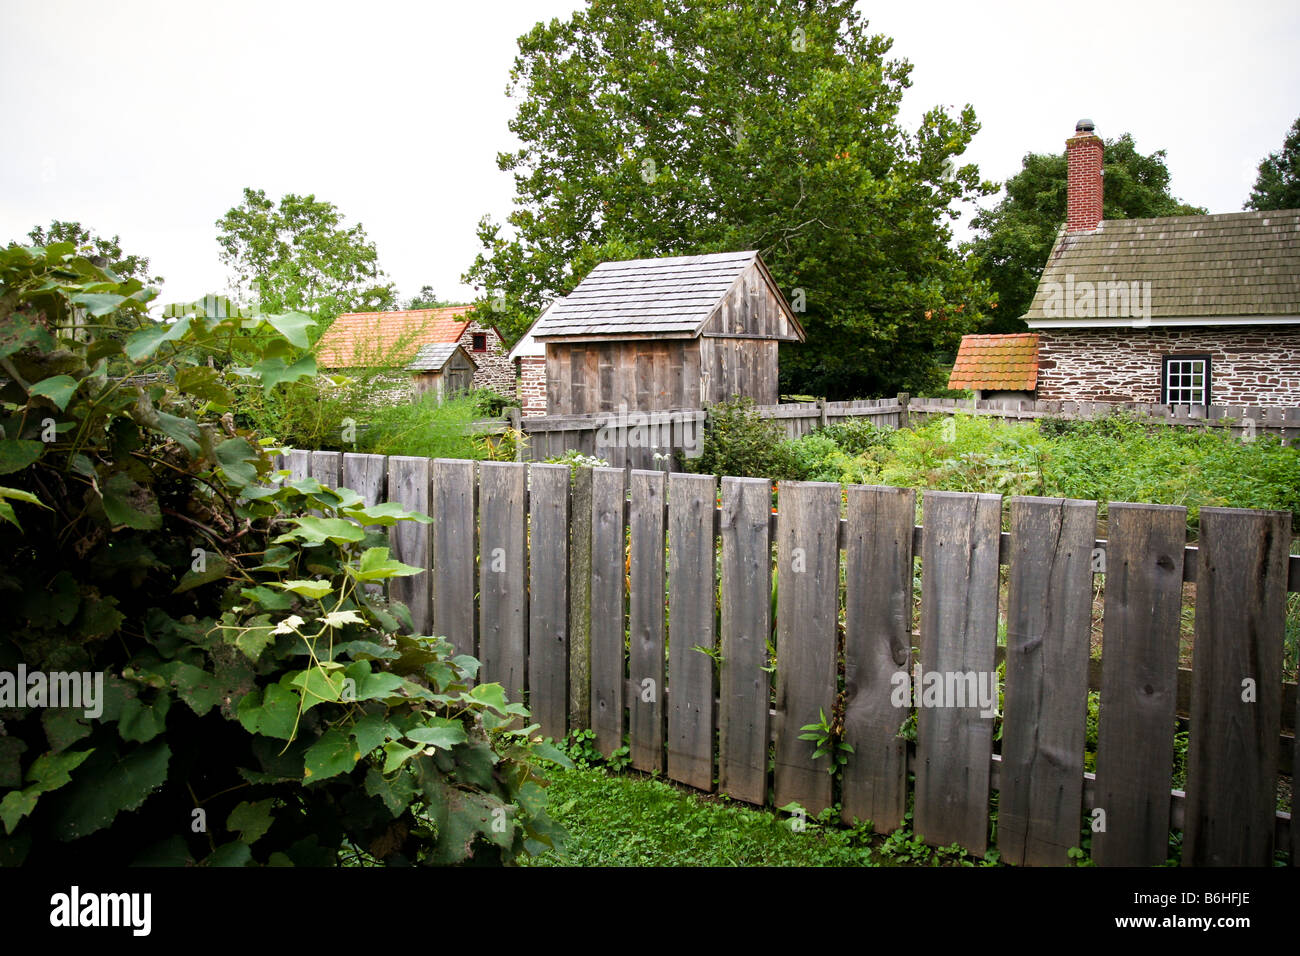 Kitchen garden area of an old 18th century farmstead with a rustic stock photo royalty free - Rustic wood fences a pastoral atmosphere ...